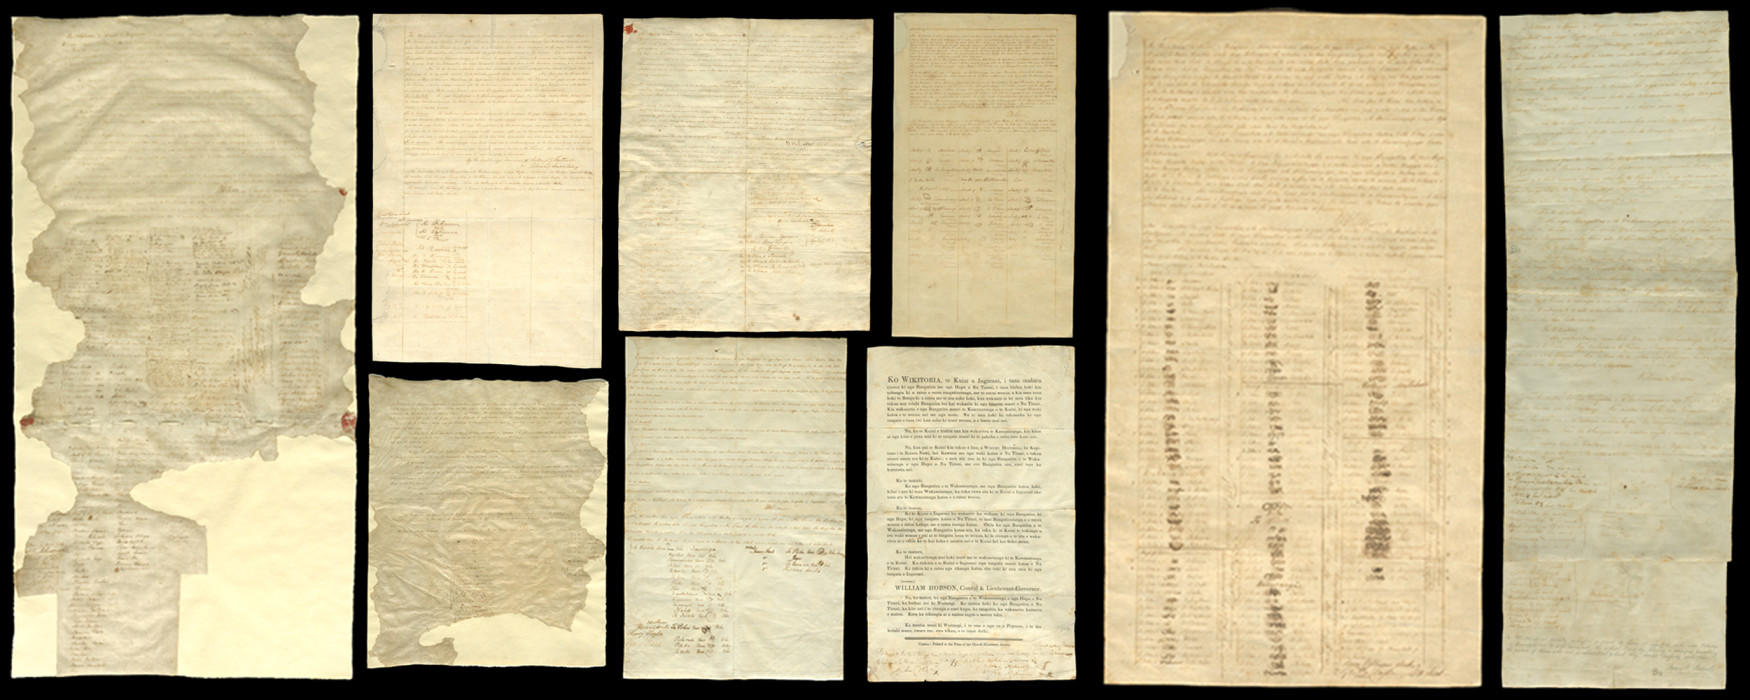 Sheets of parchment and old paper with script and signatures on a black background